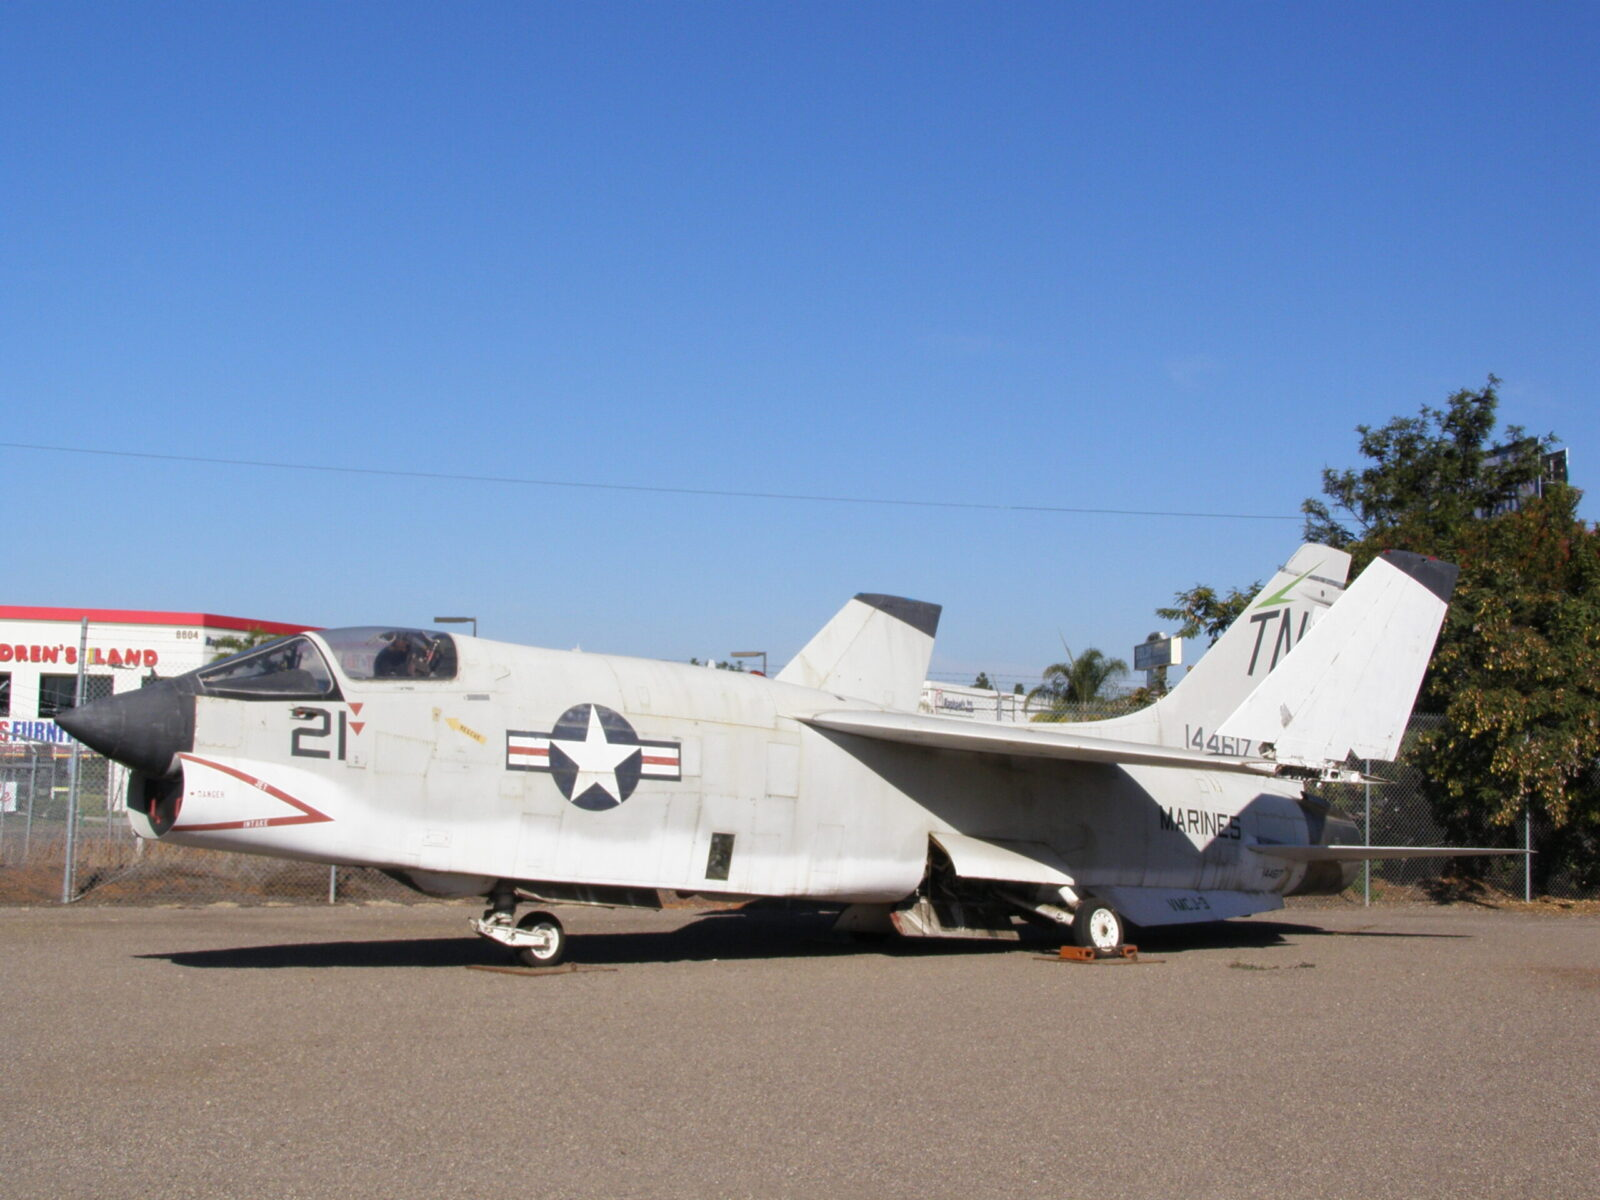 RF8G Crusader, photo recon aircraft